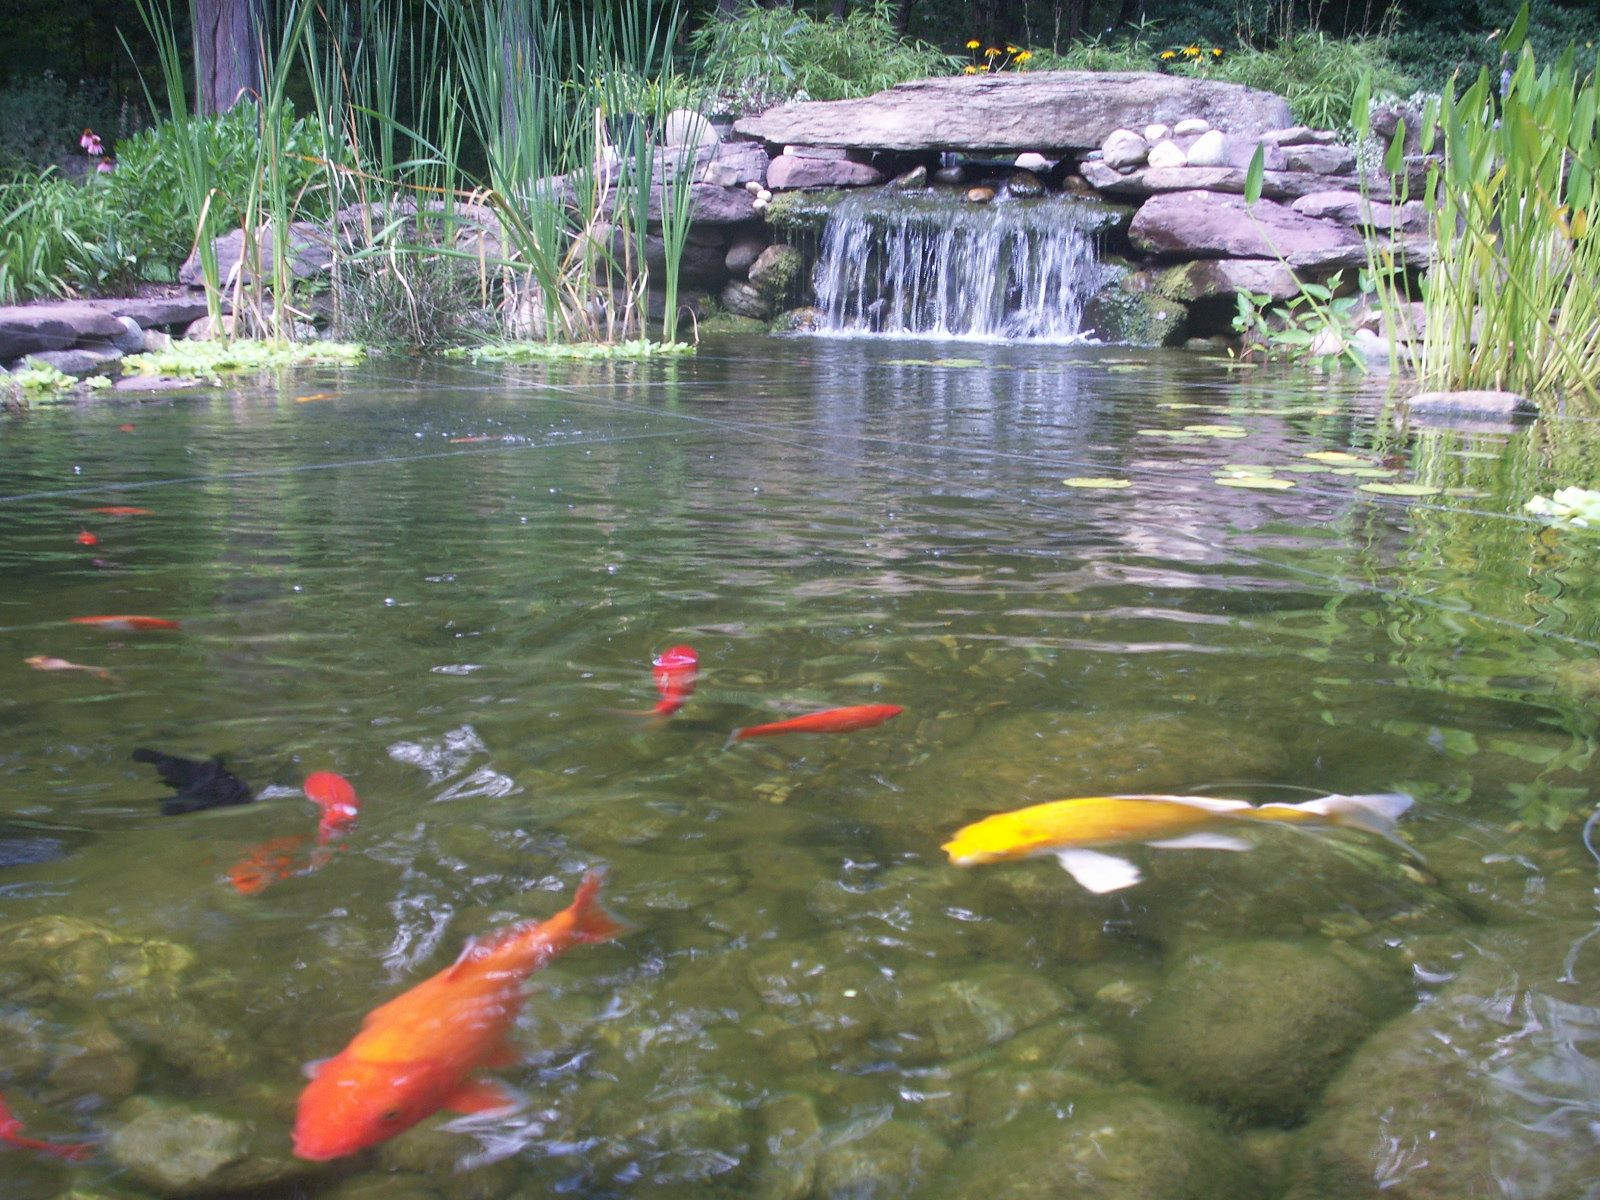 Beautiful fishies gardening water gardens my dream for Design pond image